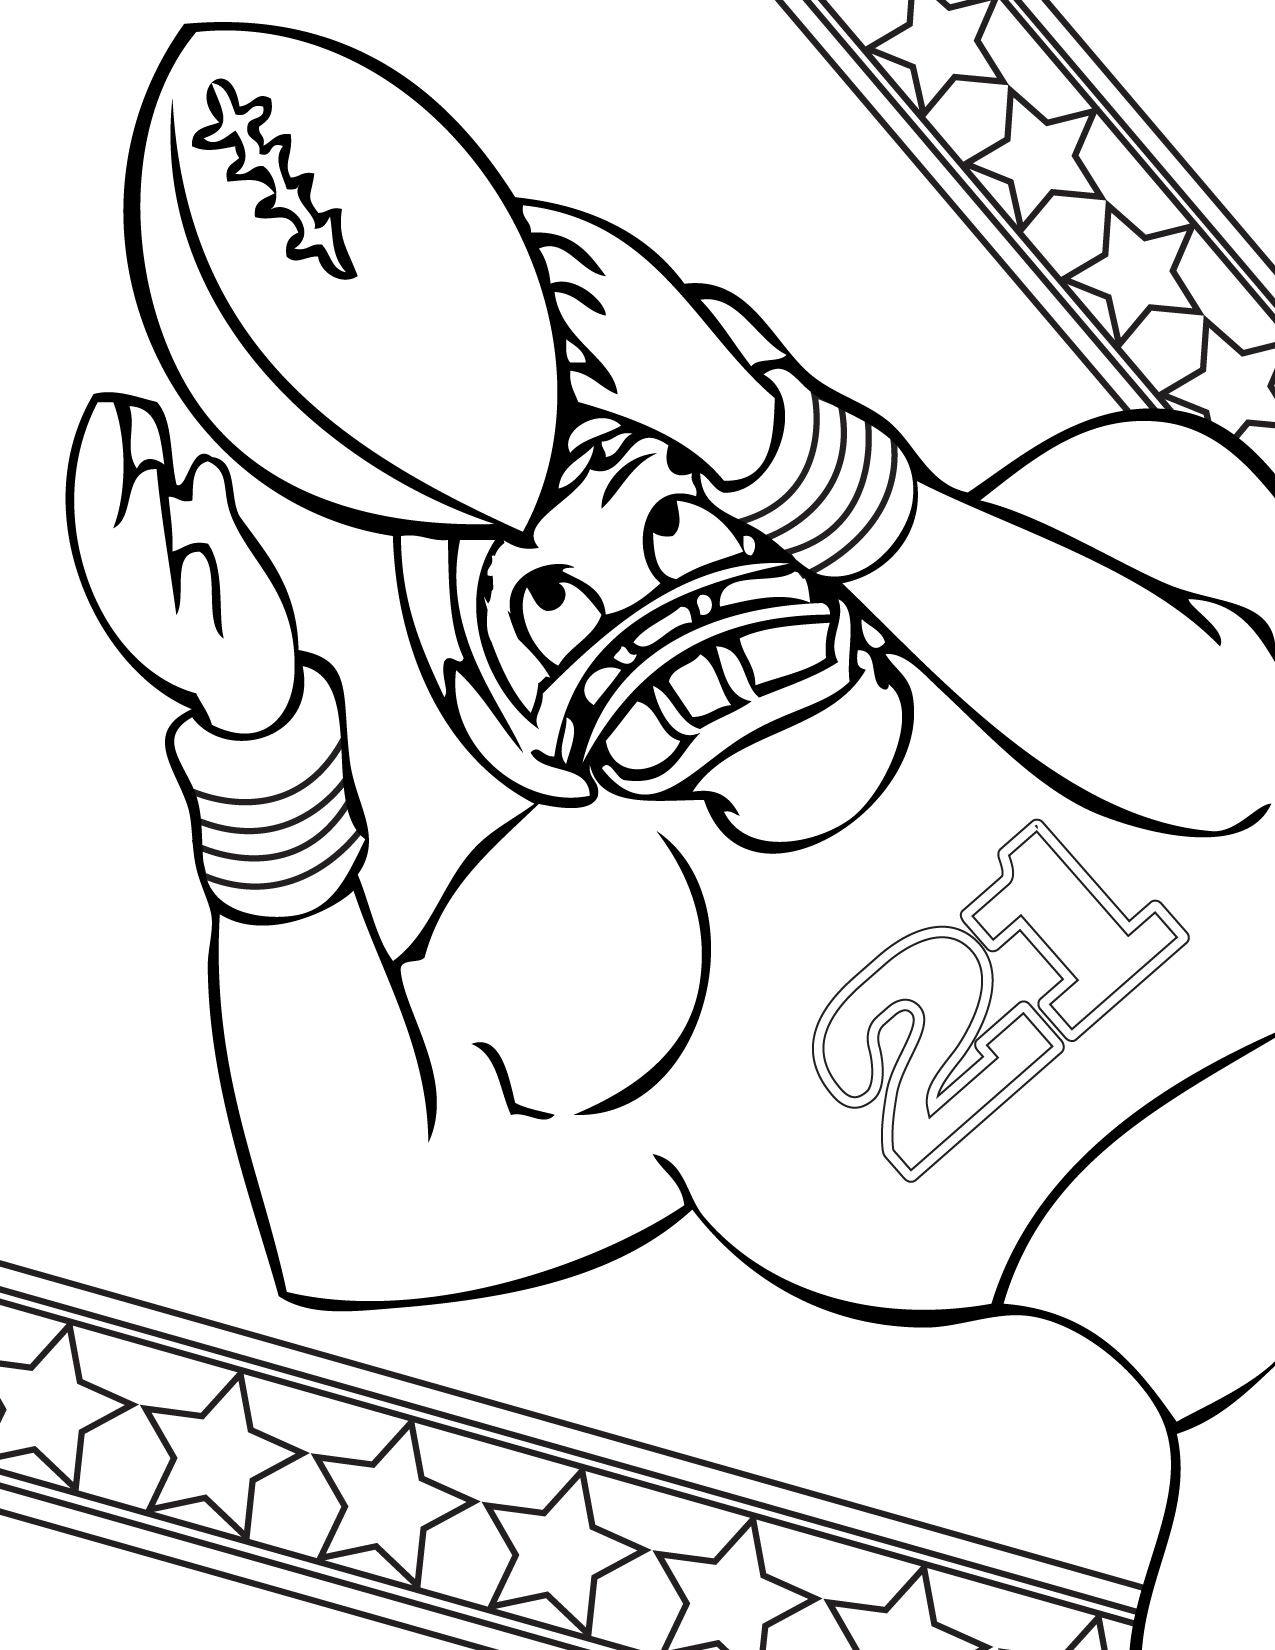 Printable coloring pages sports - Print This Page Favorite Sports Coloring Pages Coloring Pages Football